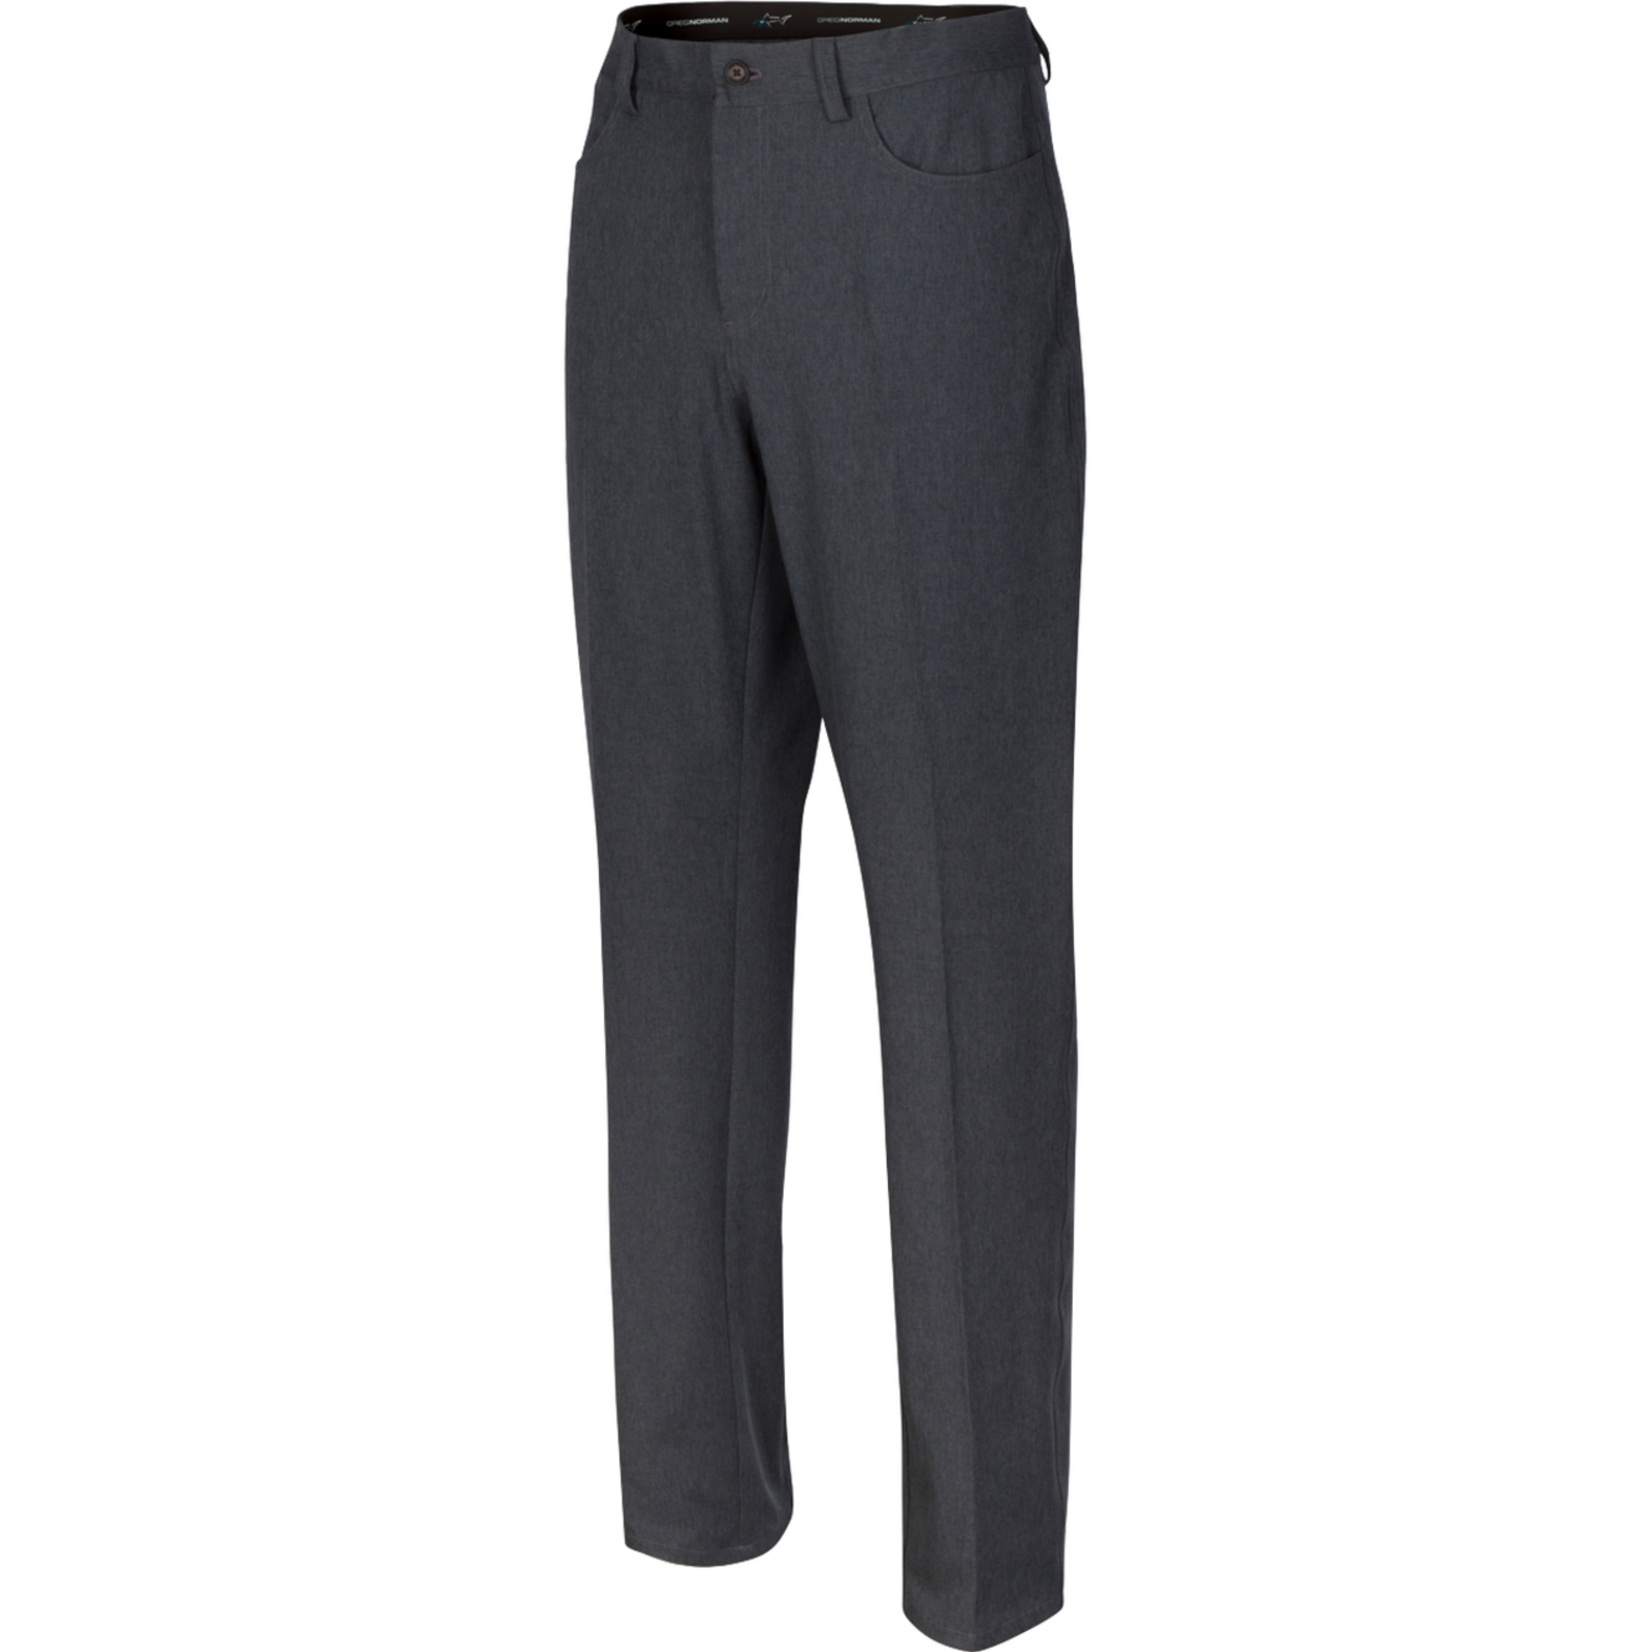 Greg Norman Apparel GN Classic Pro-Fit Pant